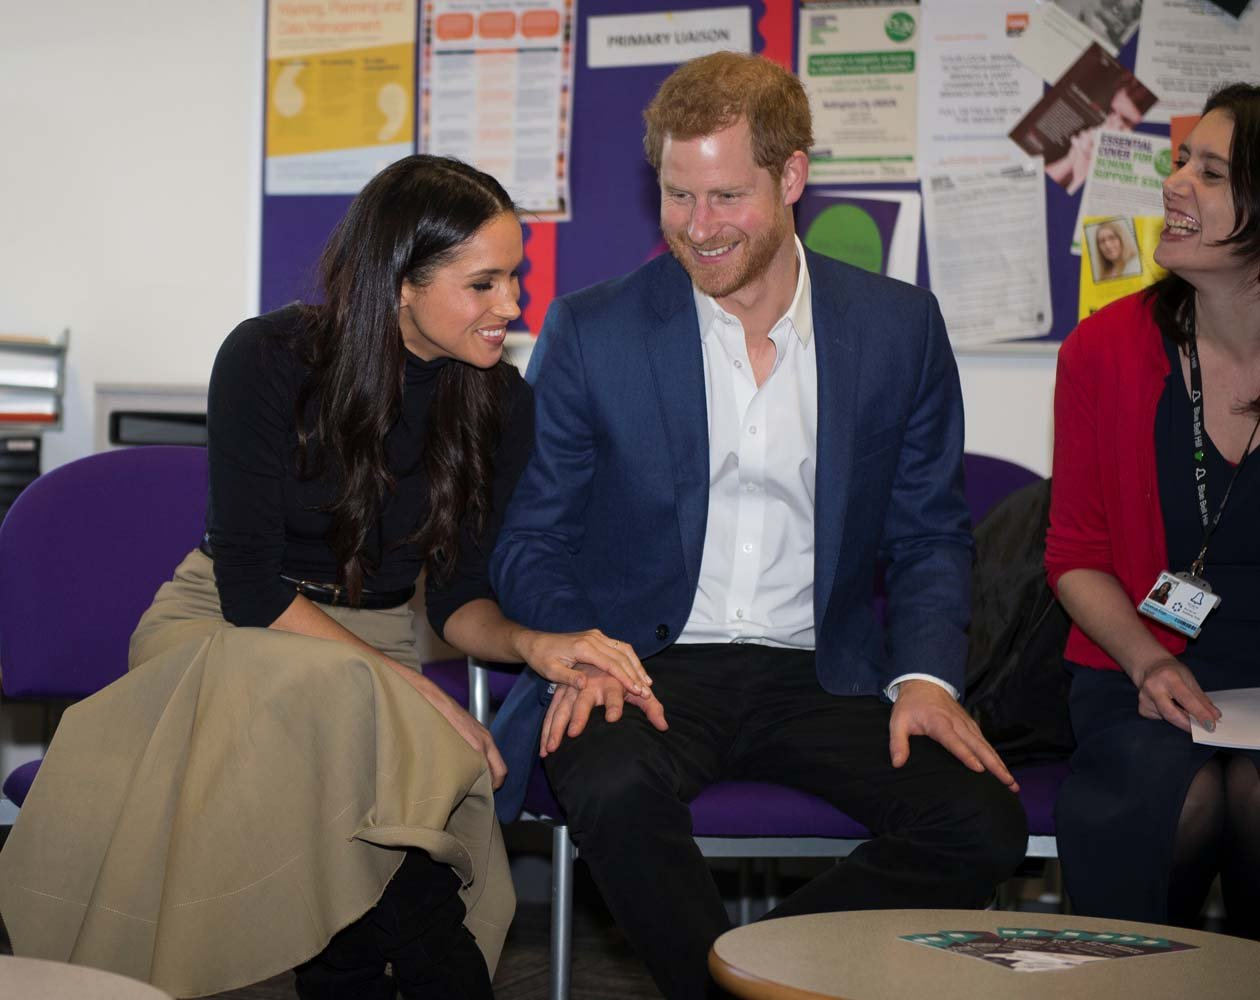 Britain's Prince Harry and his fiancee Meghan Markle visit the Nottingham Academy school in Nottingham, Britain, December 1, 2017. REUTERS/Andy Stenning/Pool